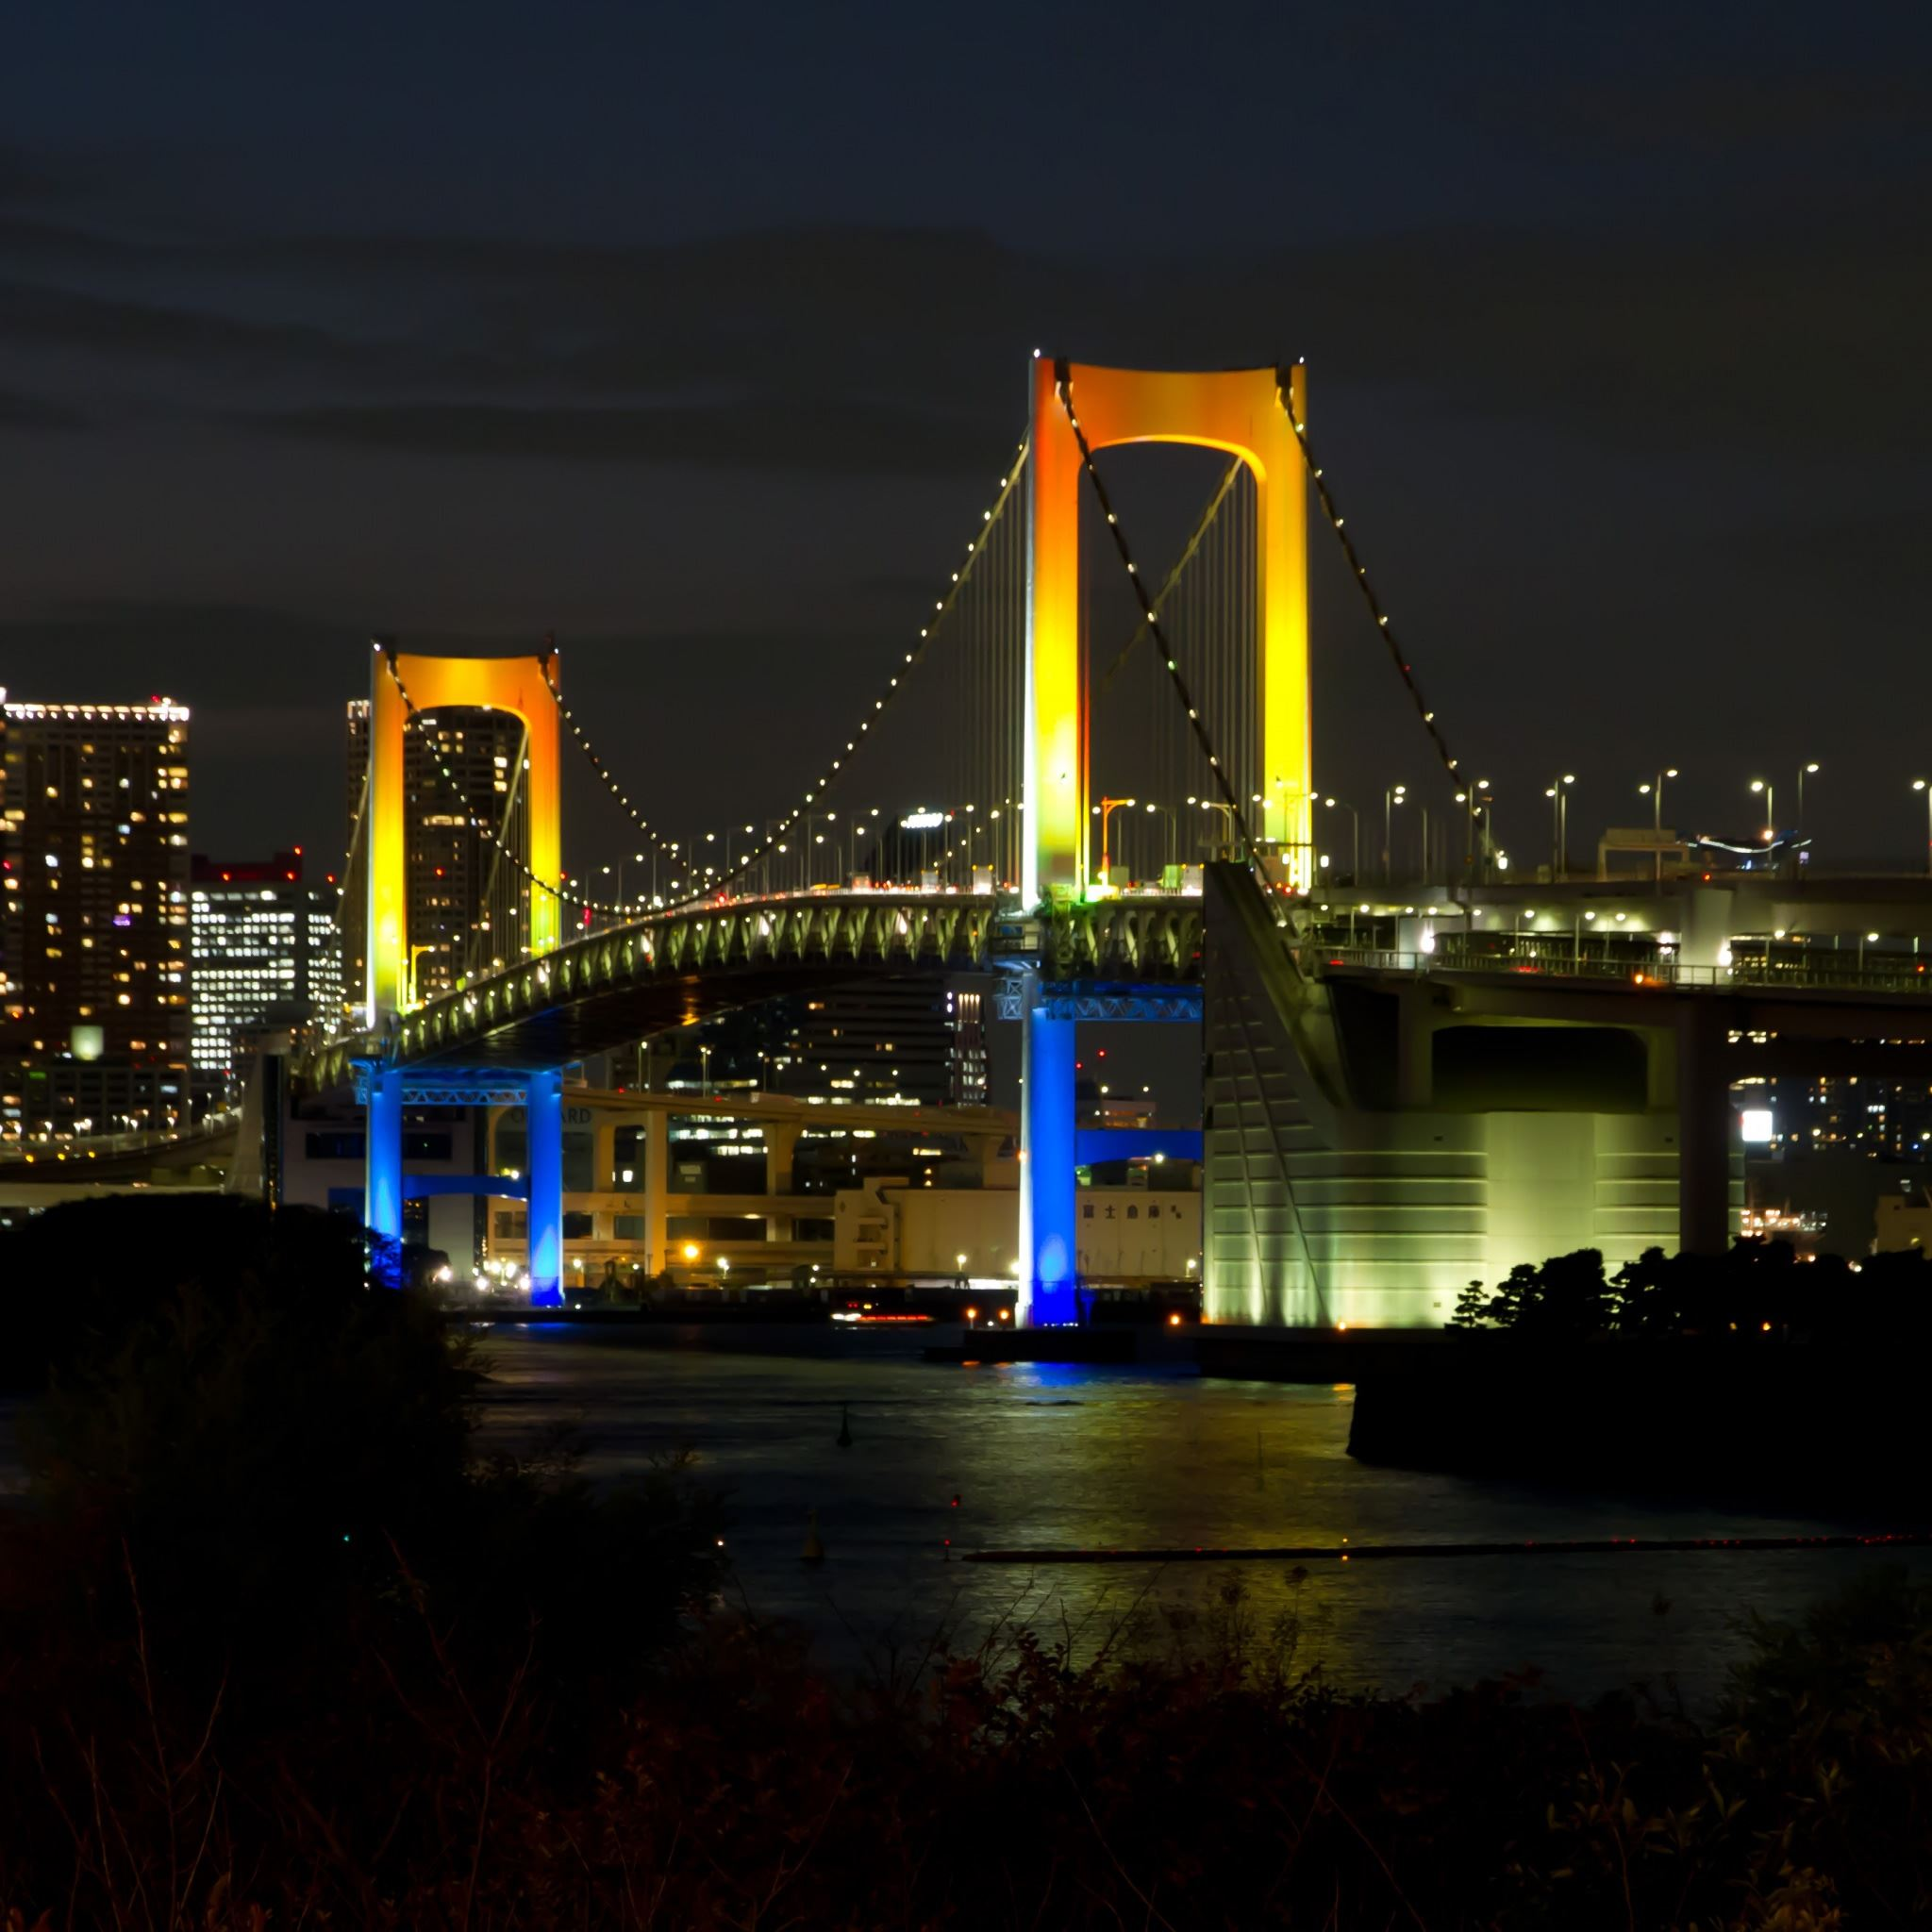 Tokyo Rainbow Bridge iPad Air wallpaper